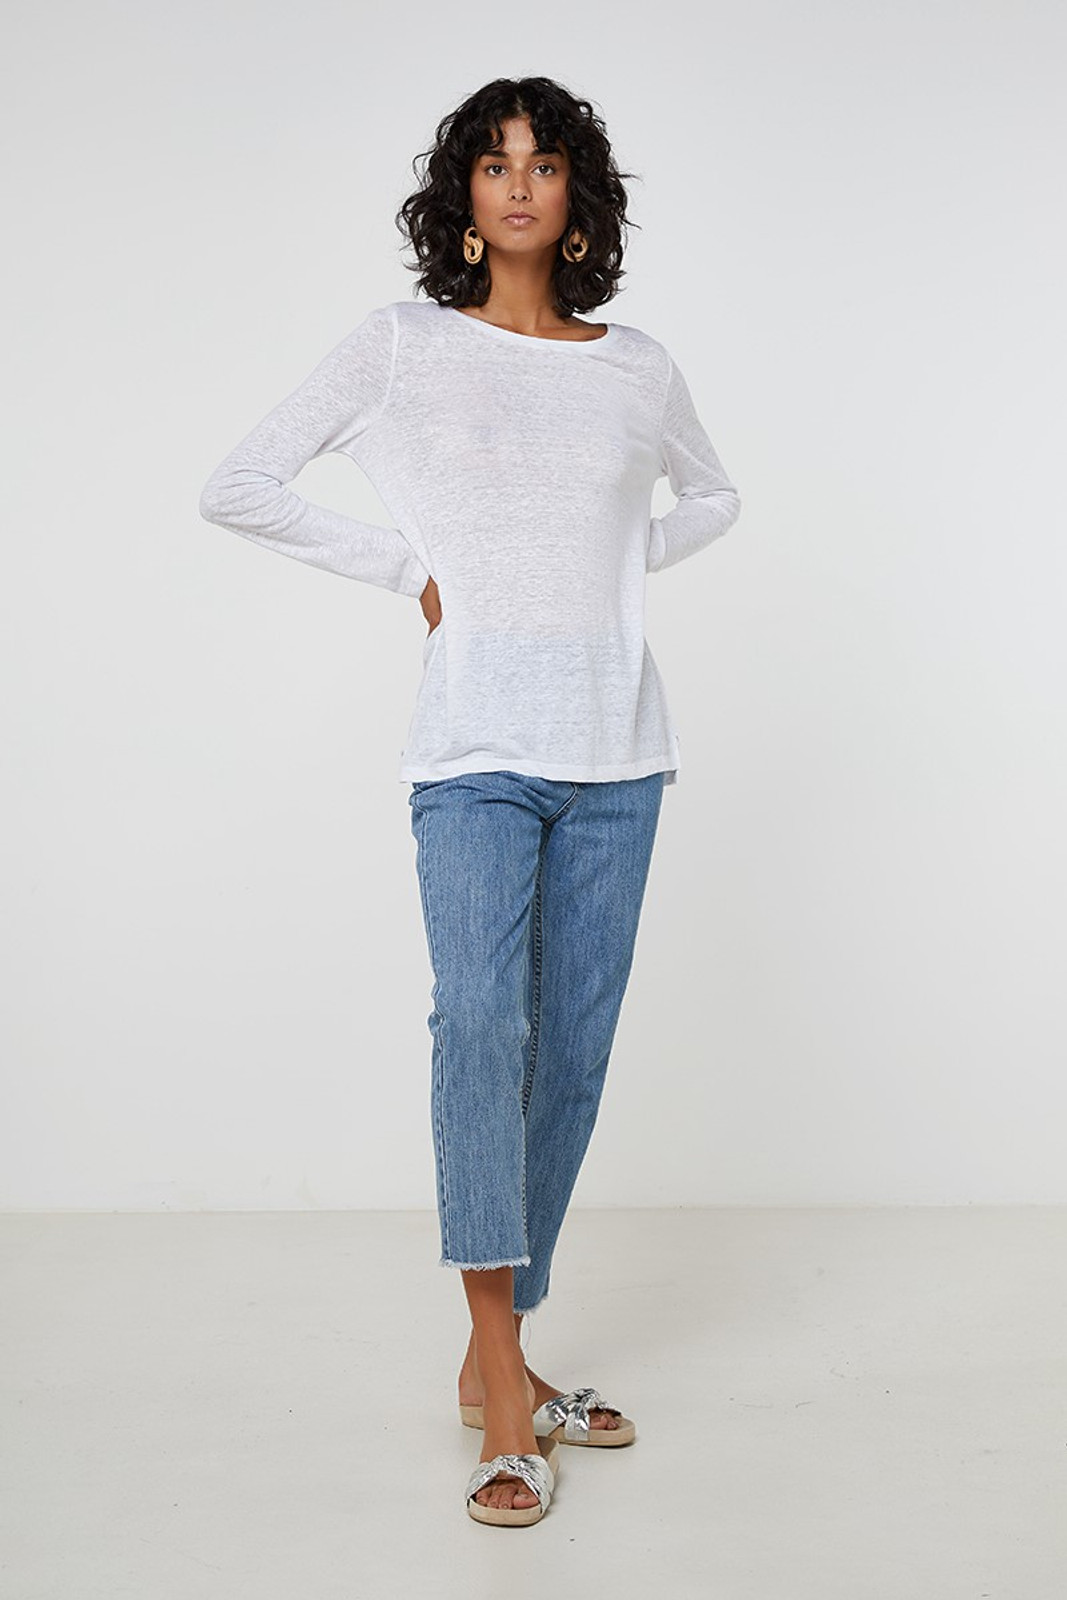 Elka Collective EC Linen L/Slv Tee White  0